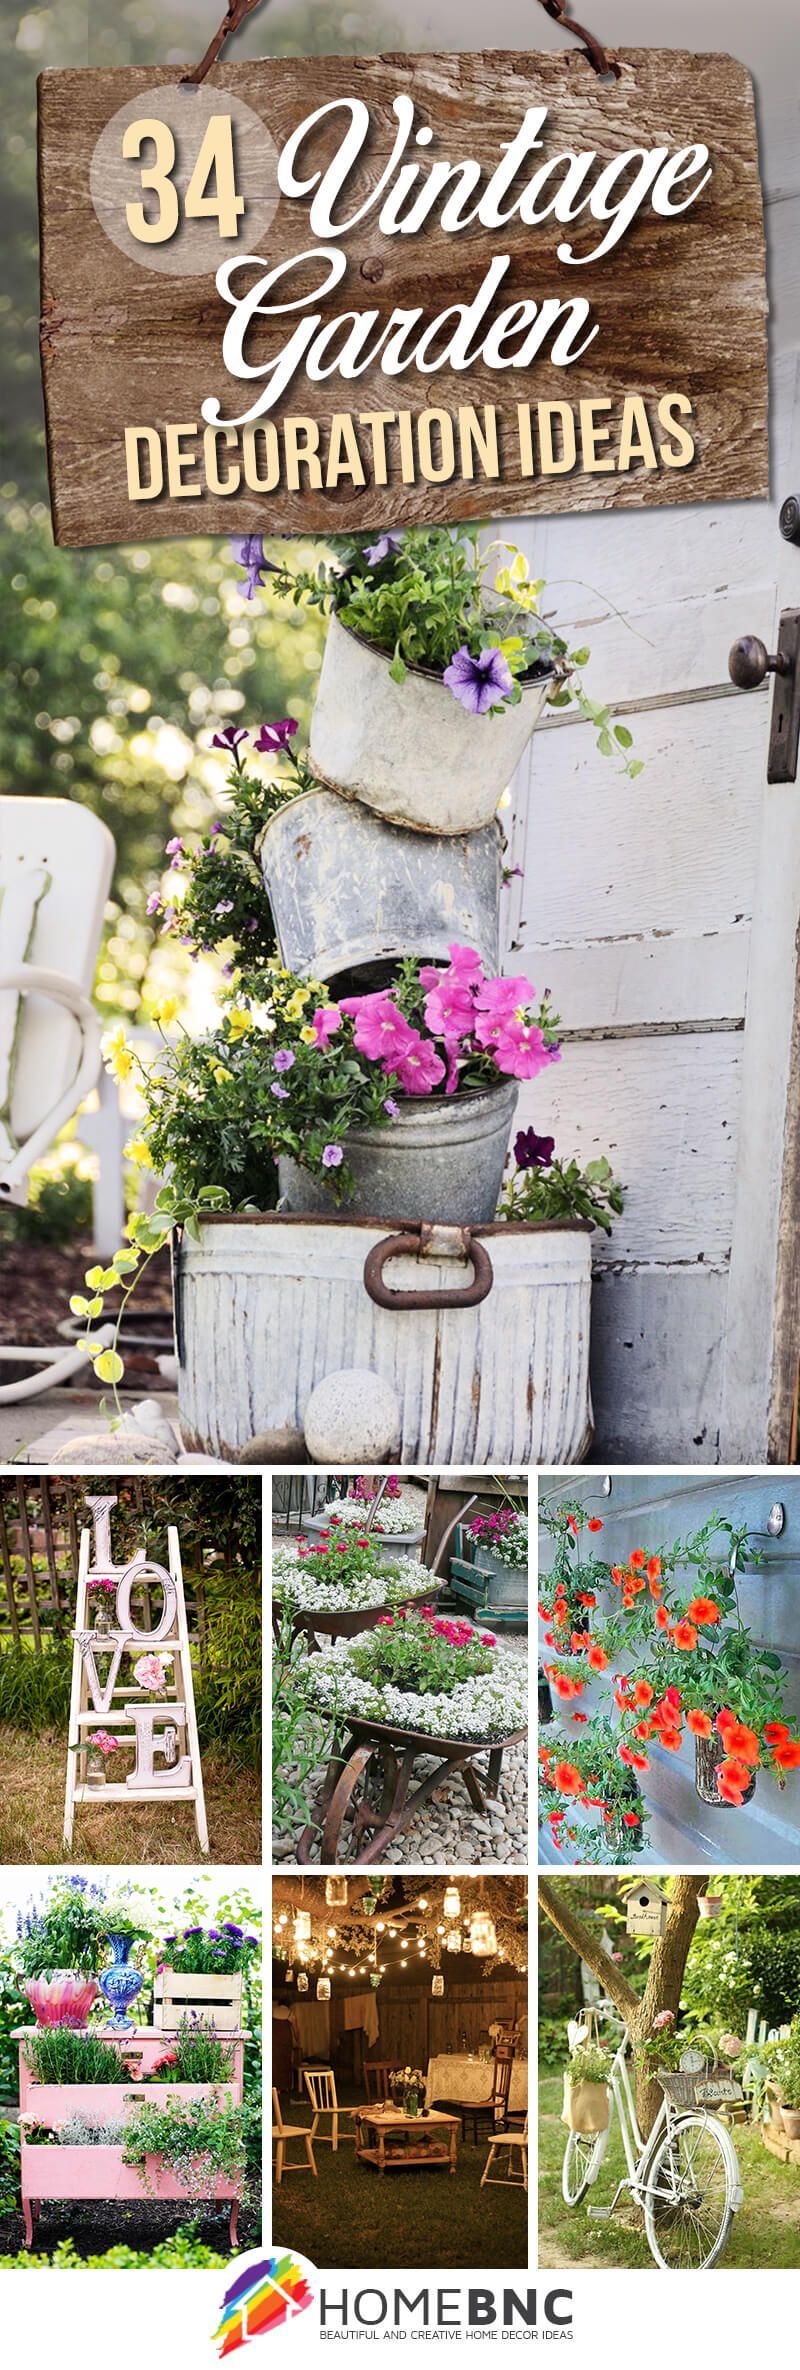 34 vintage garden decor ideas to give your outdoor space vintage